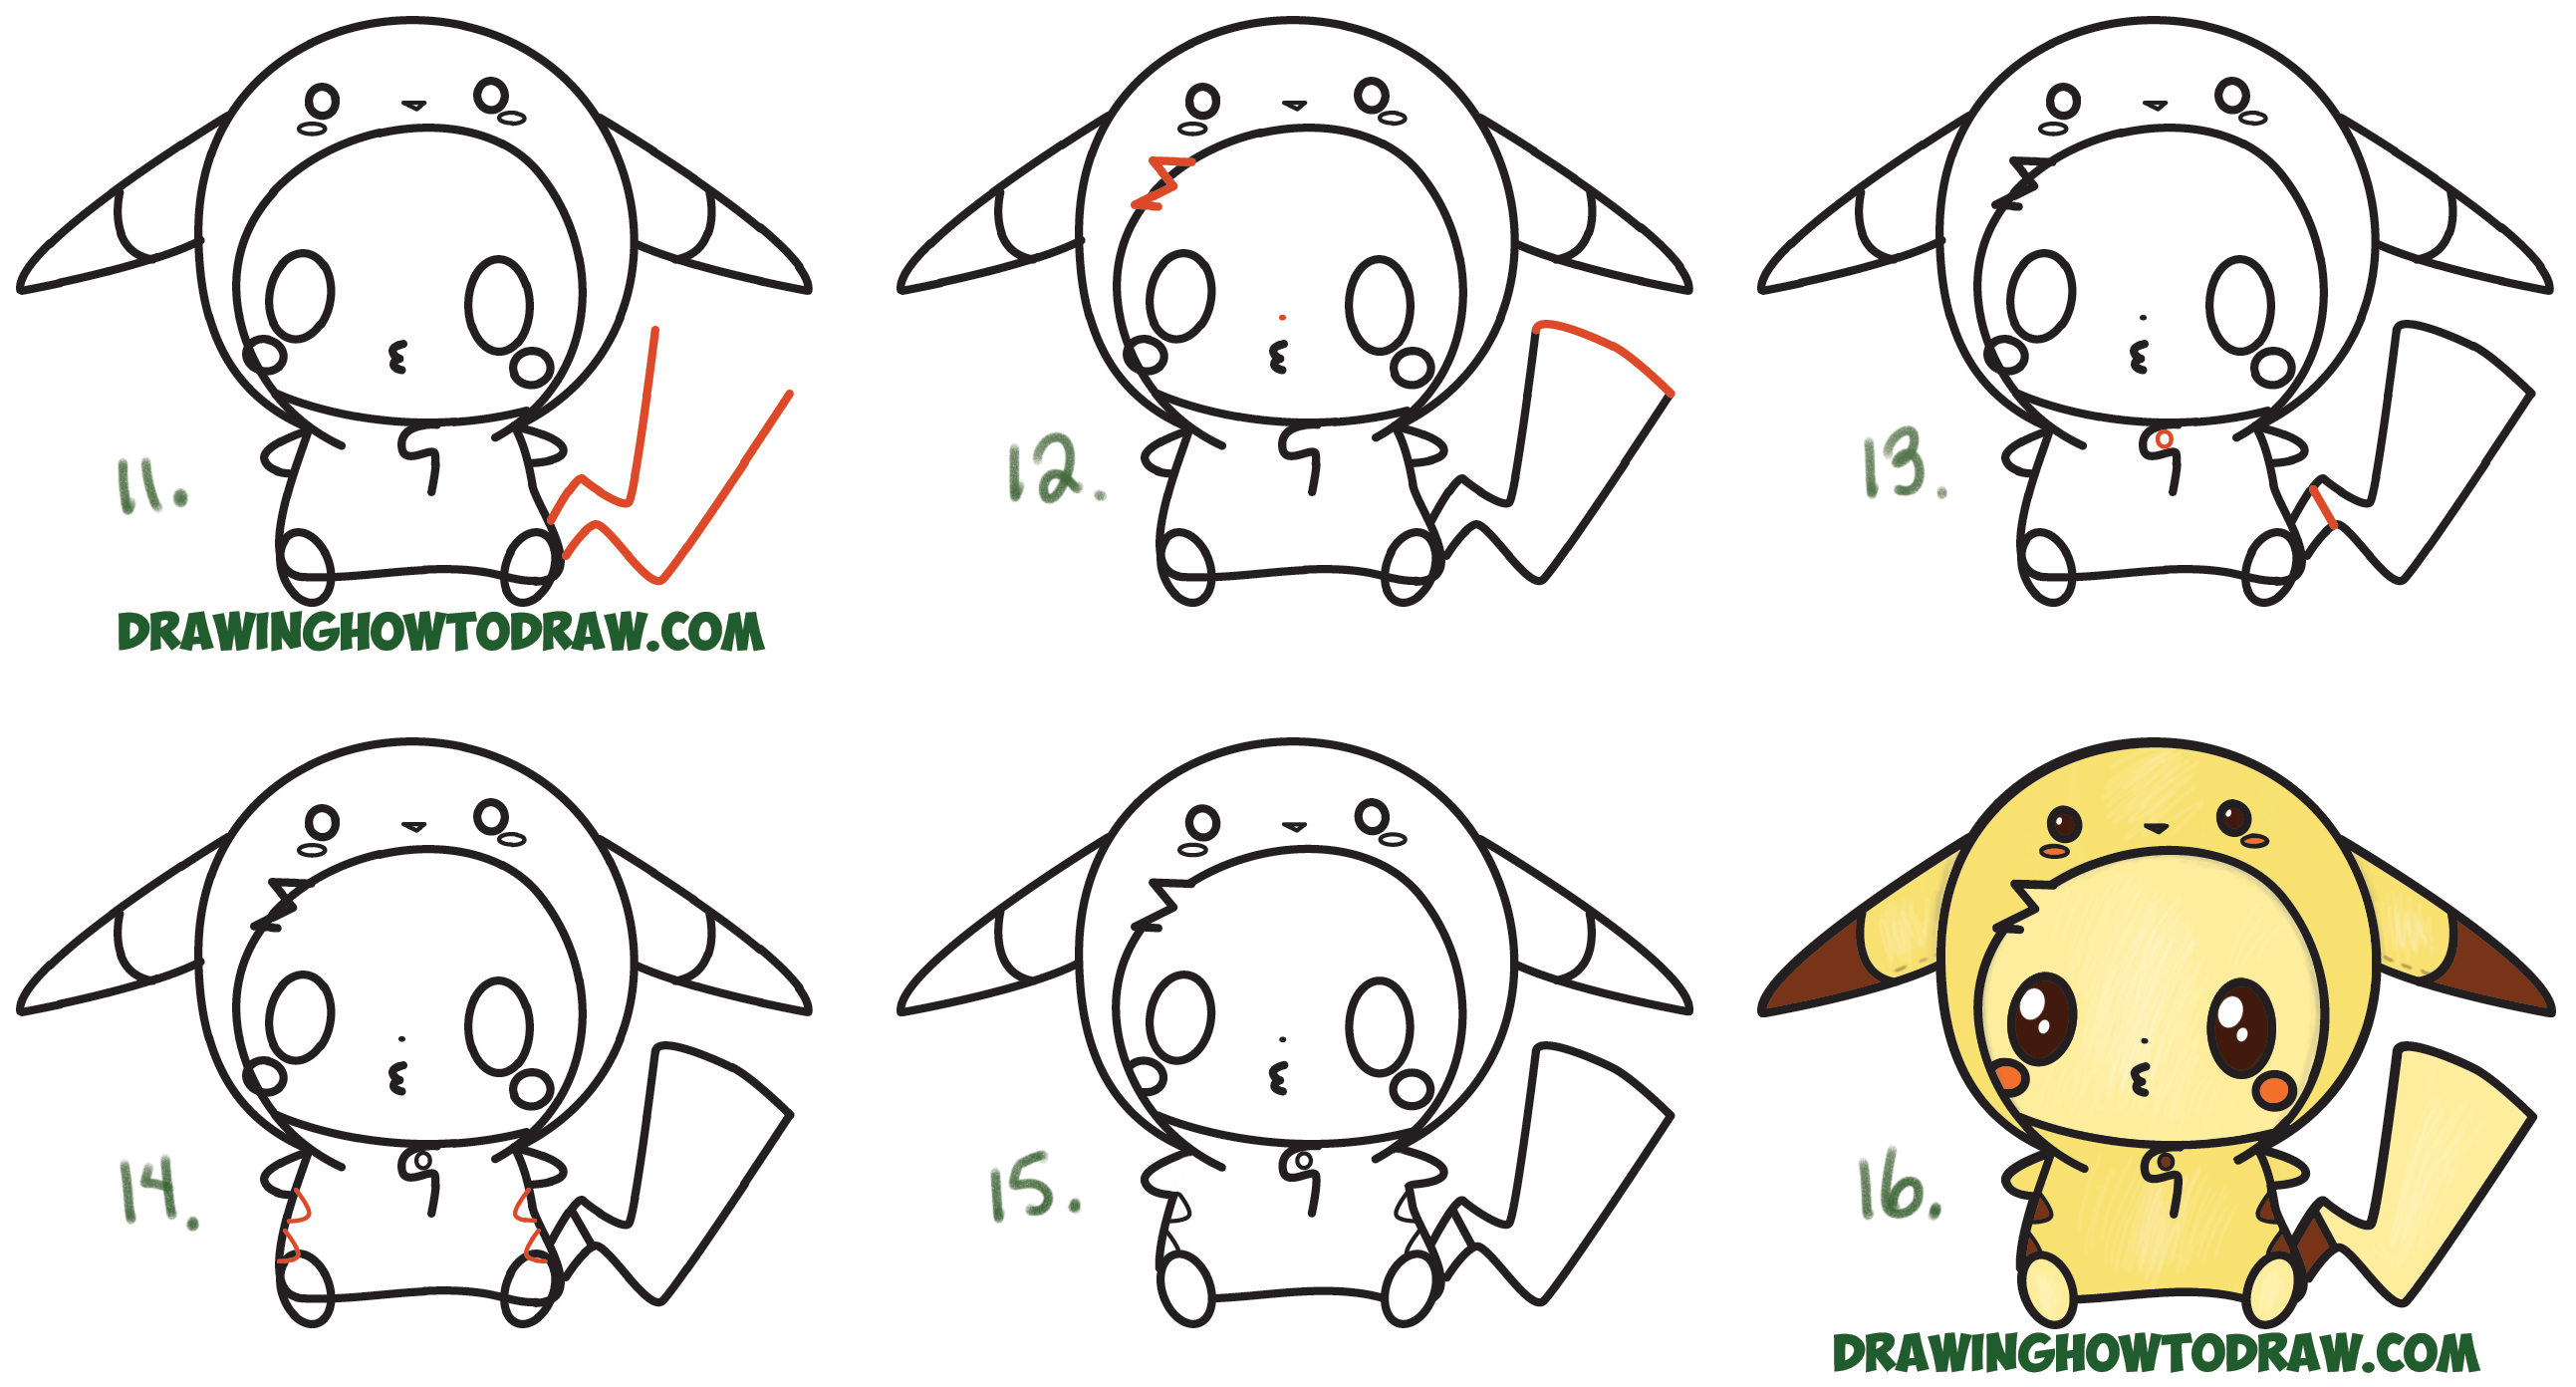 Learn how to draw cute pikachu with costume hood from pokemon kawaii chibi style